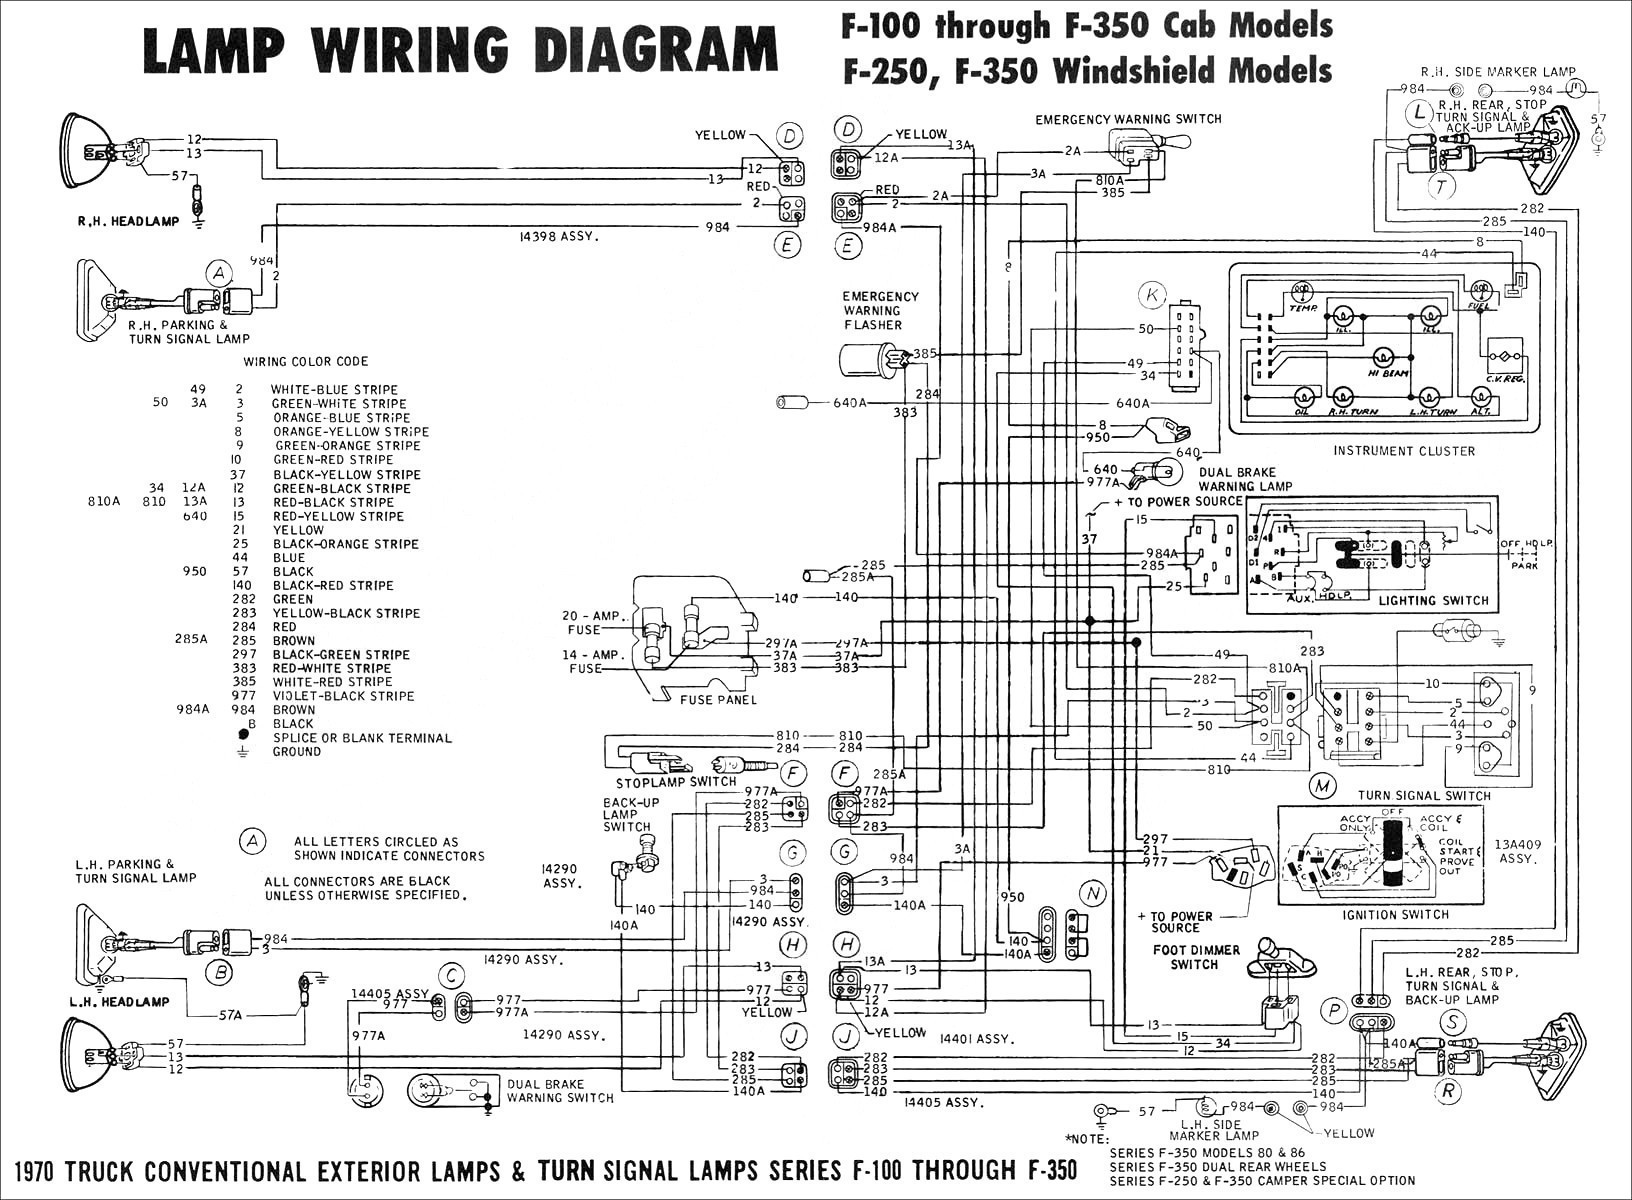 Alternator Wiring Diagram Inspirational Wiring Diagram Image